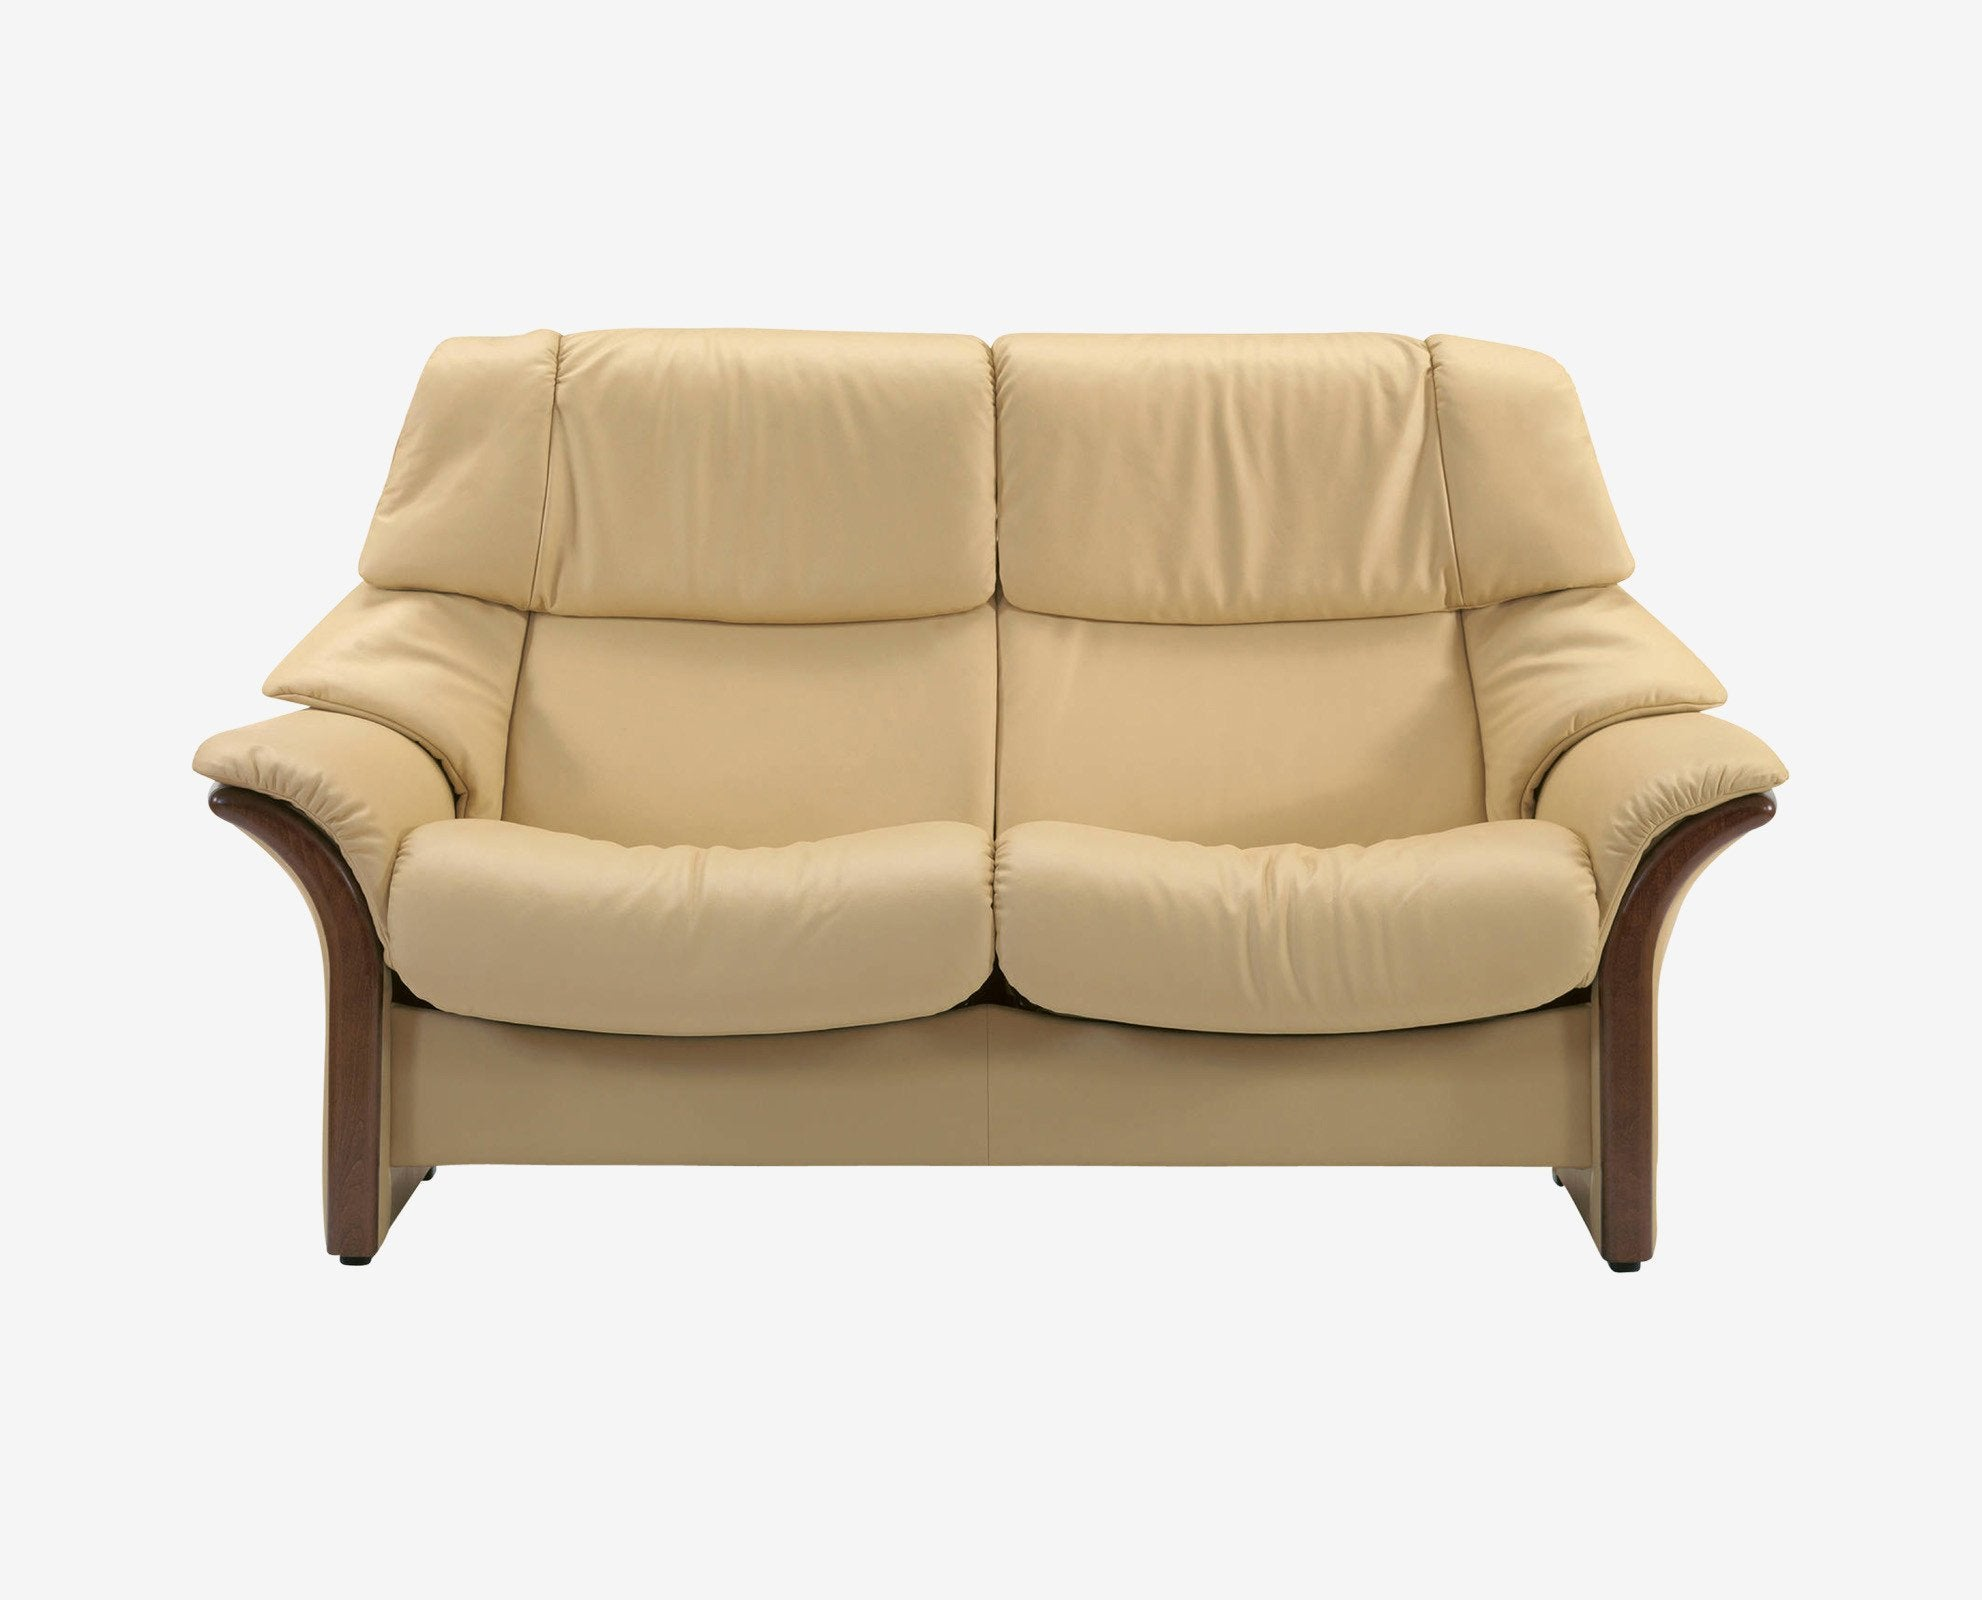 Stressless Eldorado High Back Loveseat High Back Loveseat E76